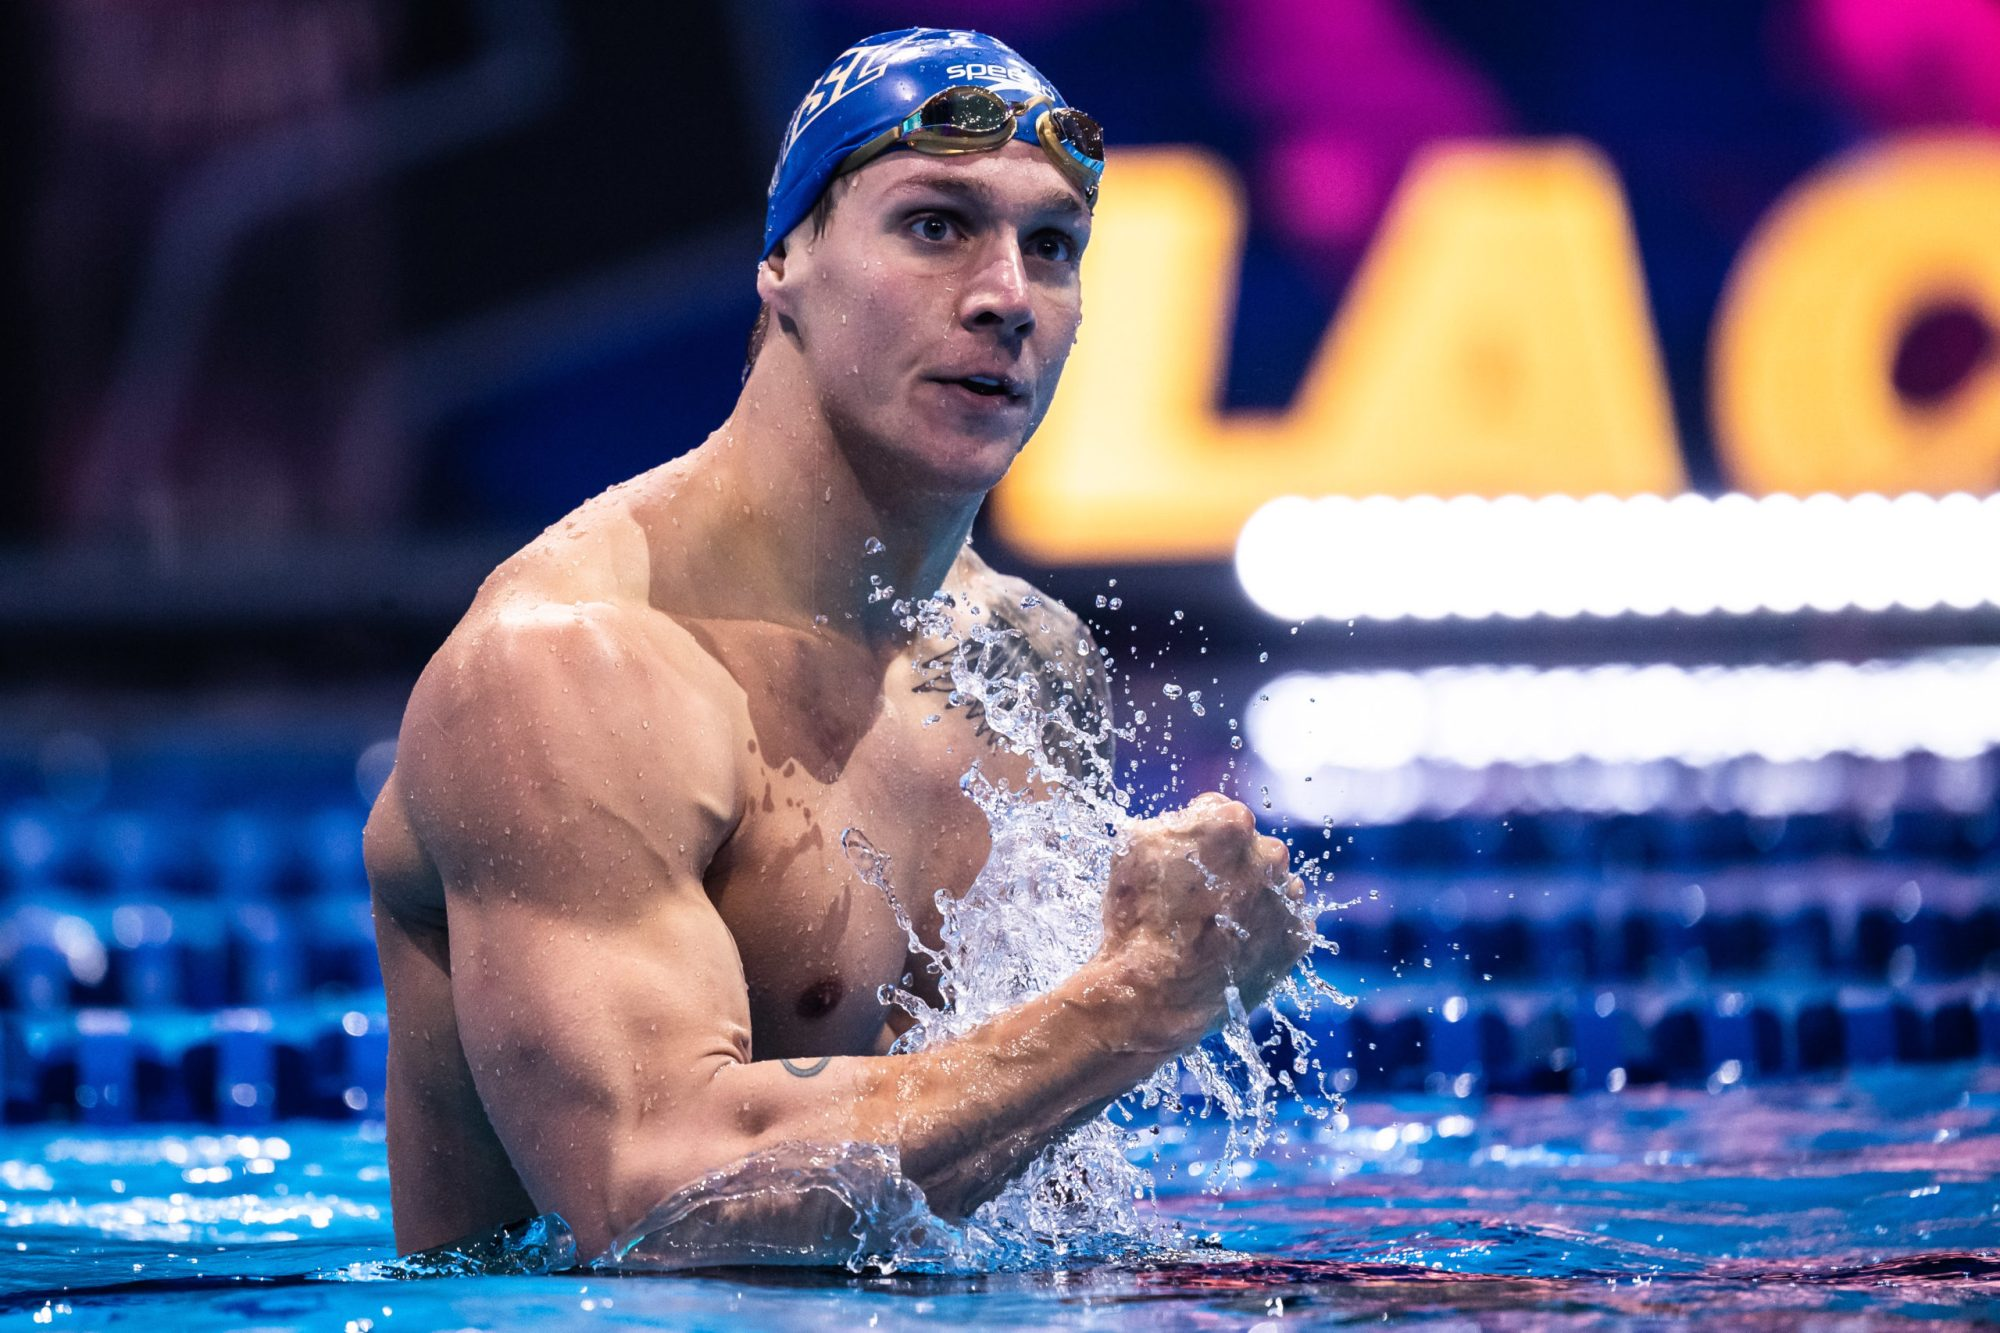 Caeleb Dressel A Condor Faster On 'Fly Than Popov Was On Freestyle 1994 As  He Swoops On Two World Records - 47.78 100 'Fly & 20.16 50 Free - In Swim  League Final - StateOfSwimming